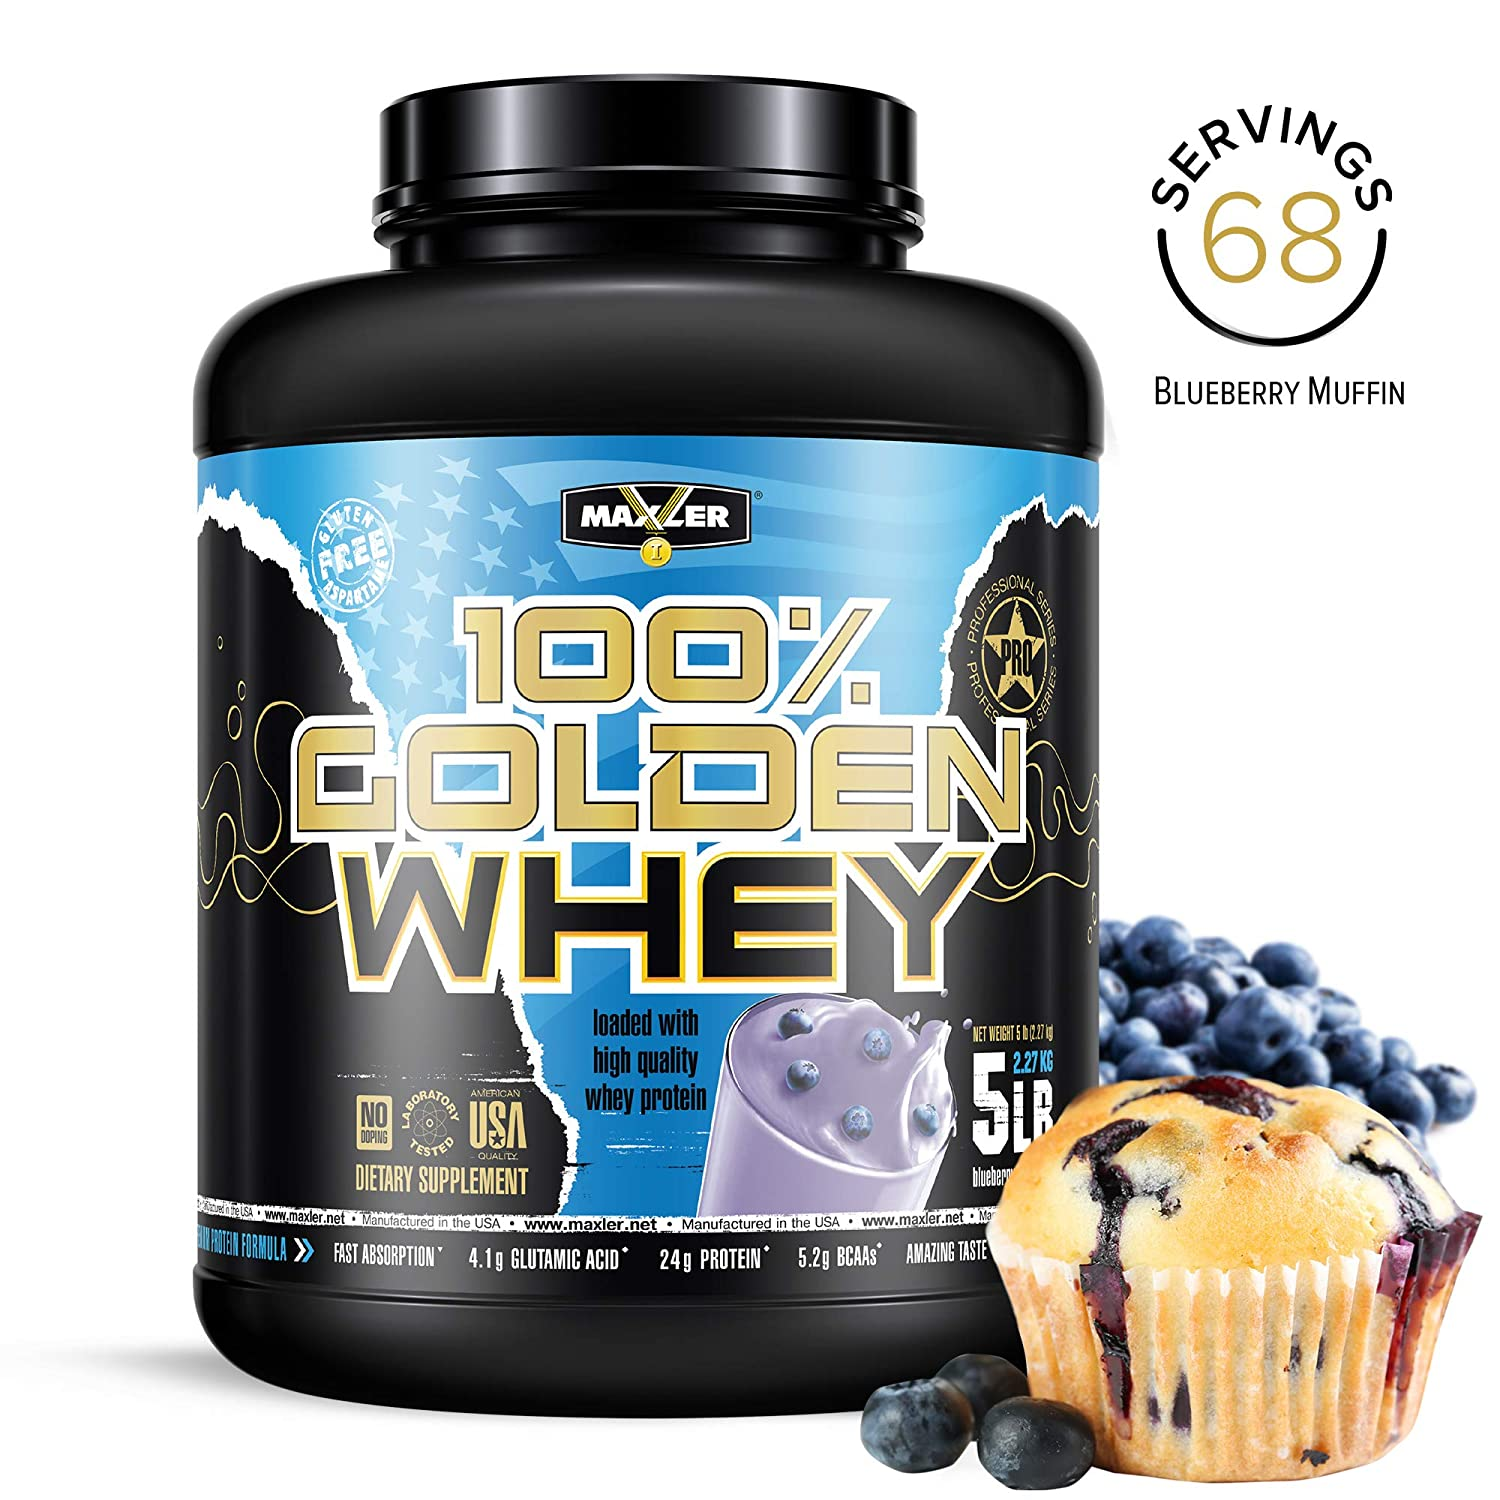 100 Golden Whey Blueberry Muffin 24g Premium Whey Protein Powder Intra Post Workout Muscle Recovery Fast-Absorbing Whey Concentrate, Hydrolysate Isolate Protein Blend 5 lbs